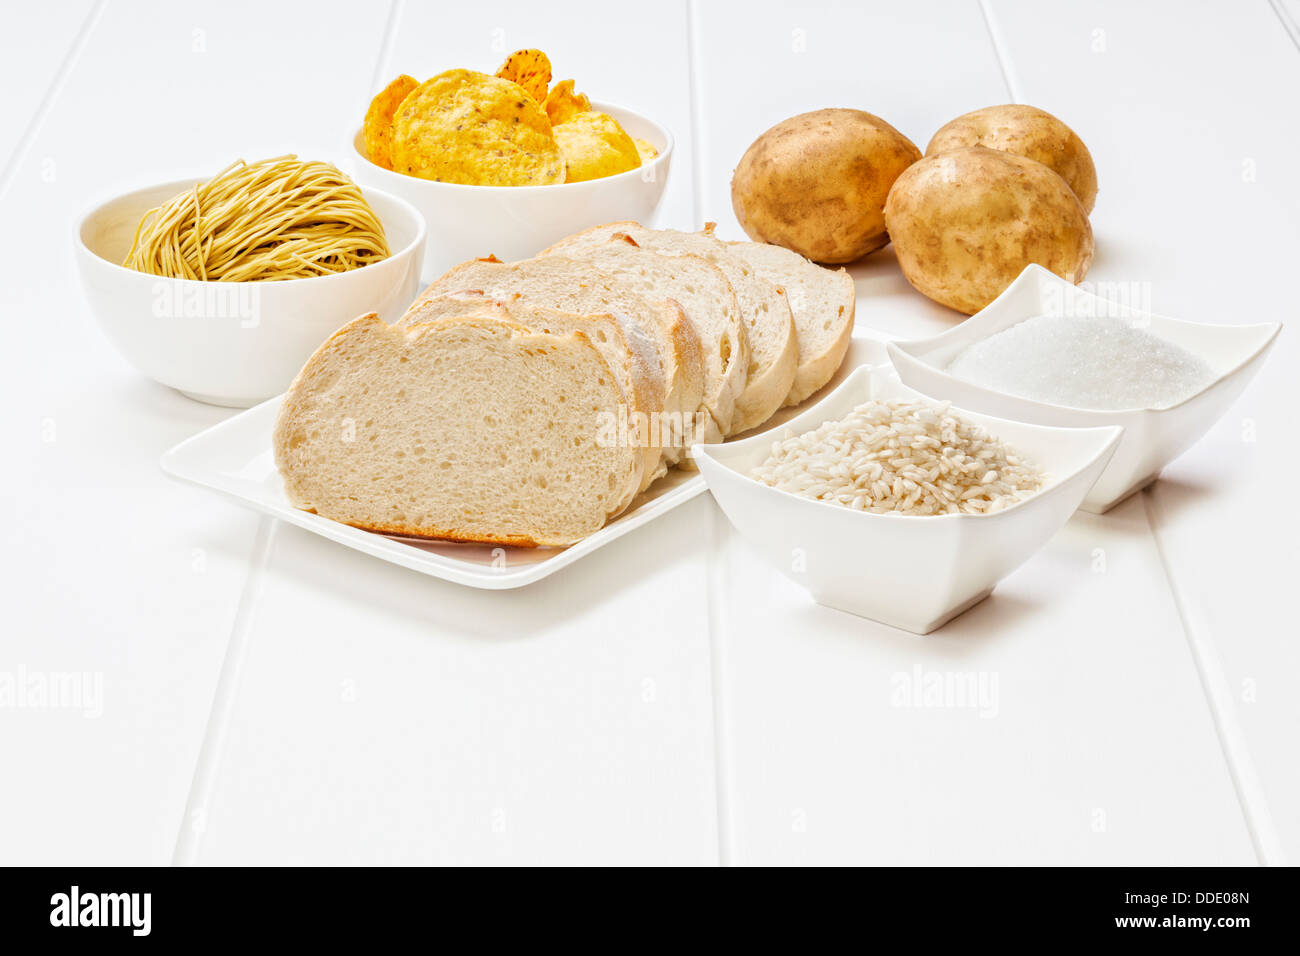 Glycemic Index High GI Foods - some of the foods which are high in the glycemic index. - Stock Image